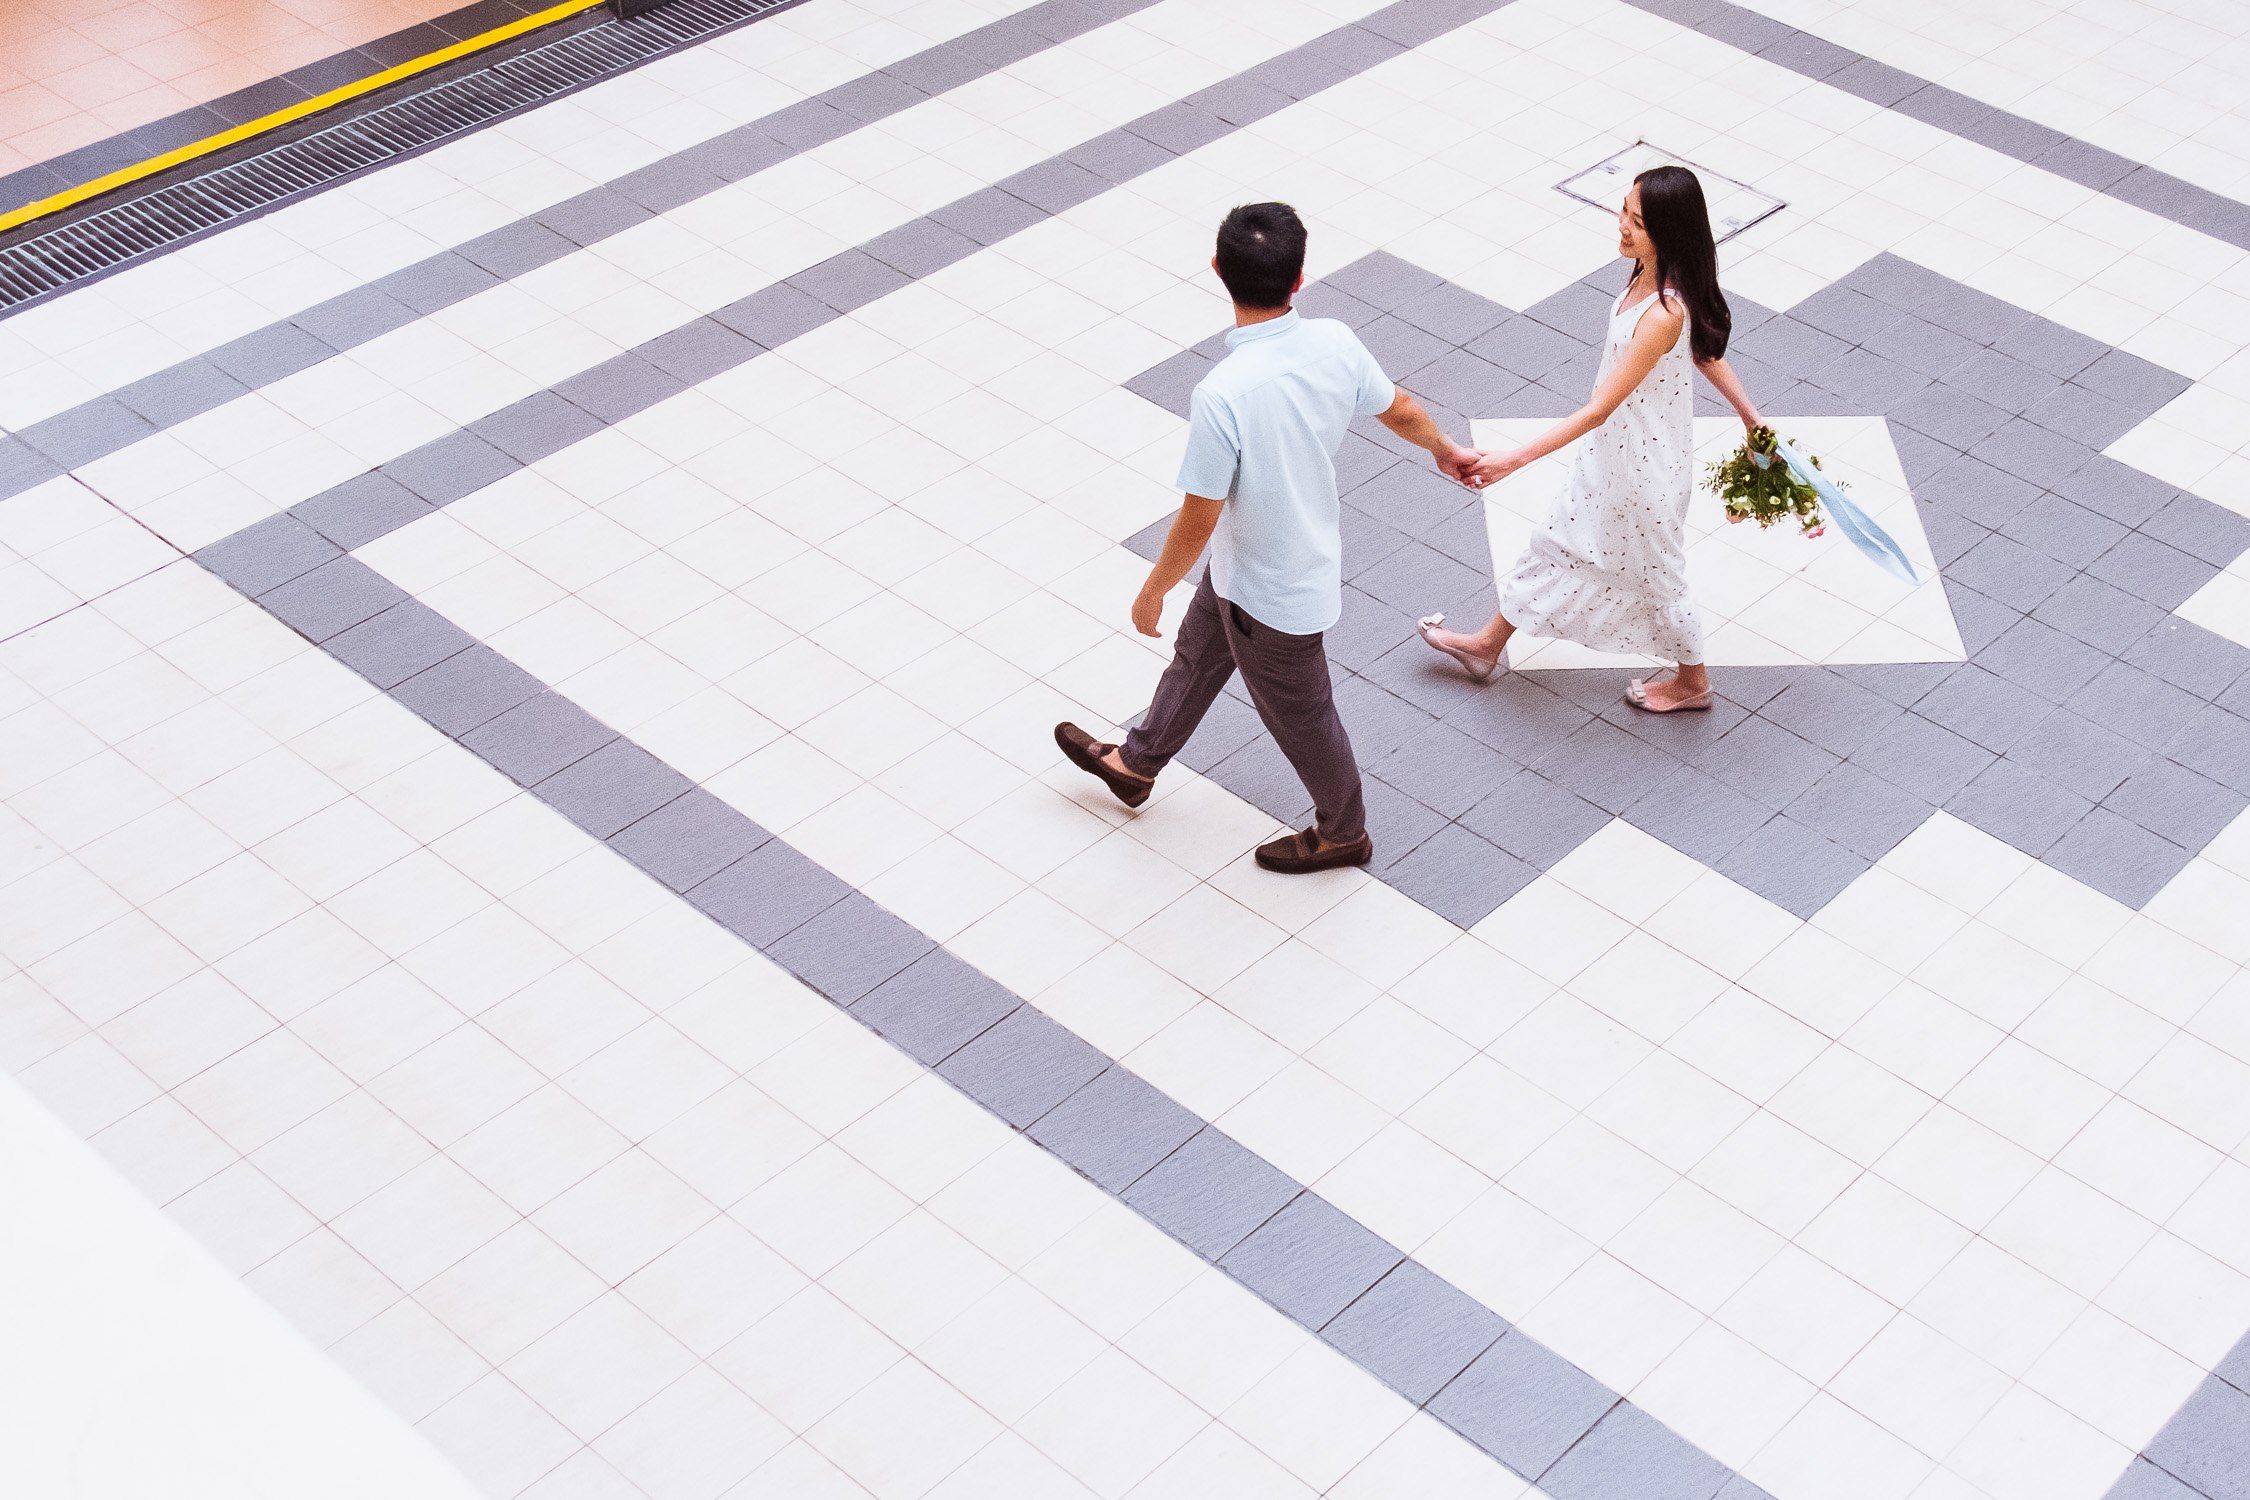 Engaged couple with bouquet walking across graphic tile floor